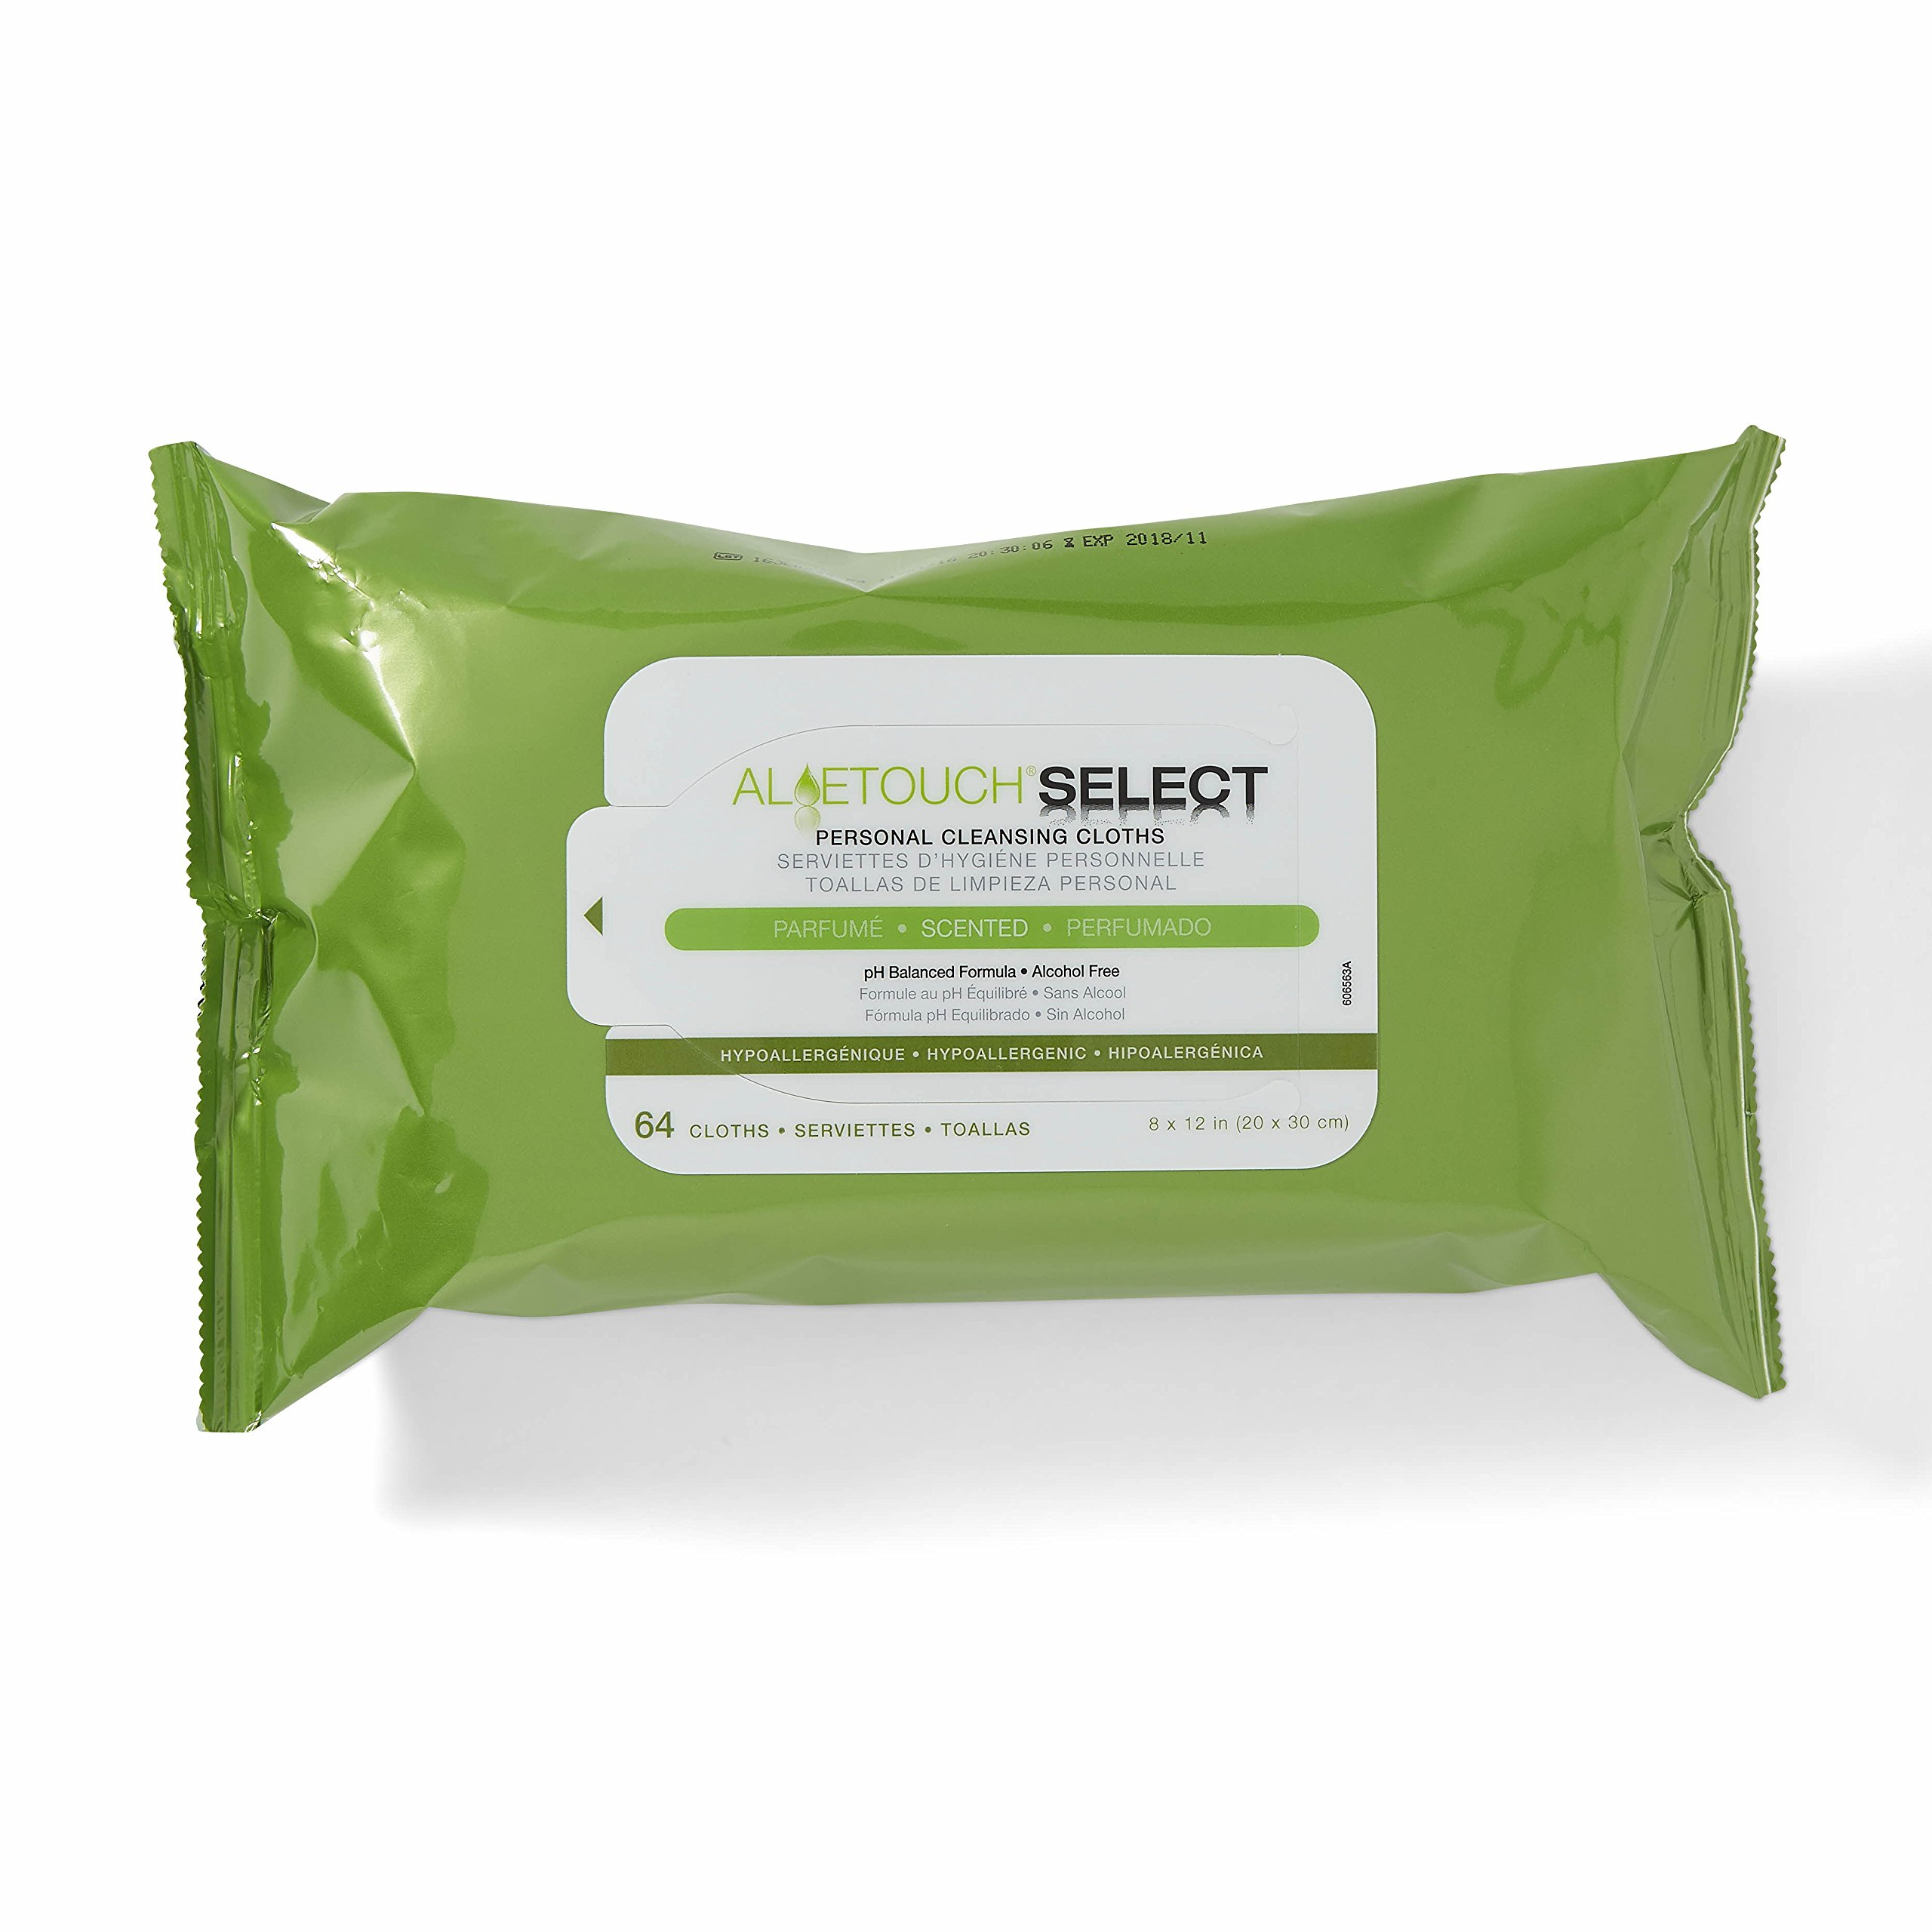 Medline AloeTouch Select Heavyweight Personal Cleansing Cloth Wipes, 576 Count, Scented, 8 x 12 inch Adult Large Incontinence Wipes